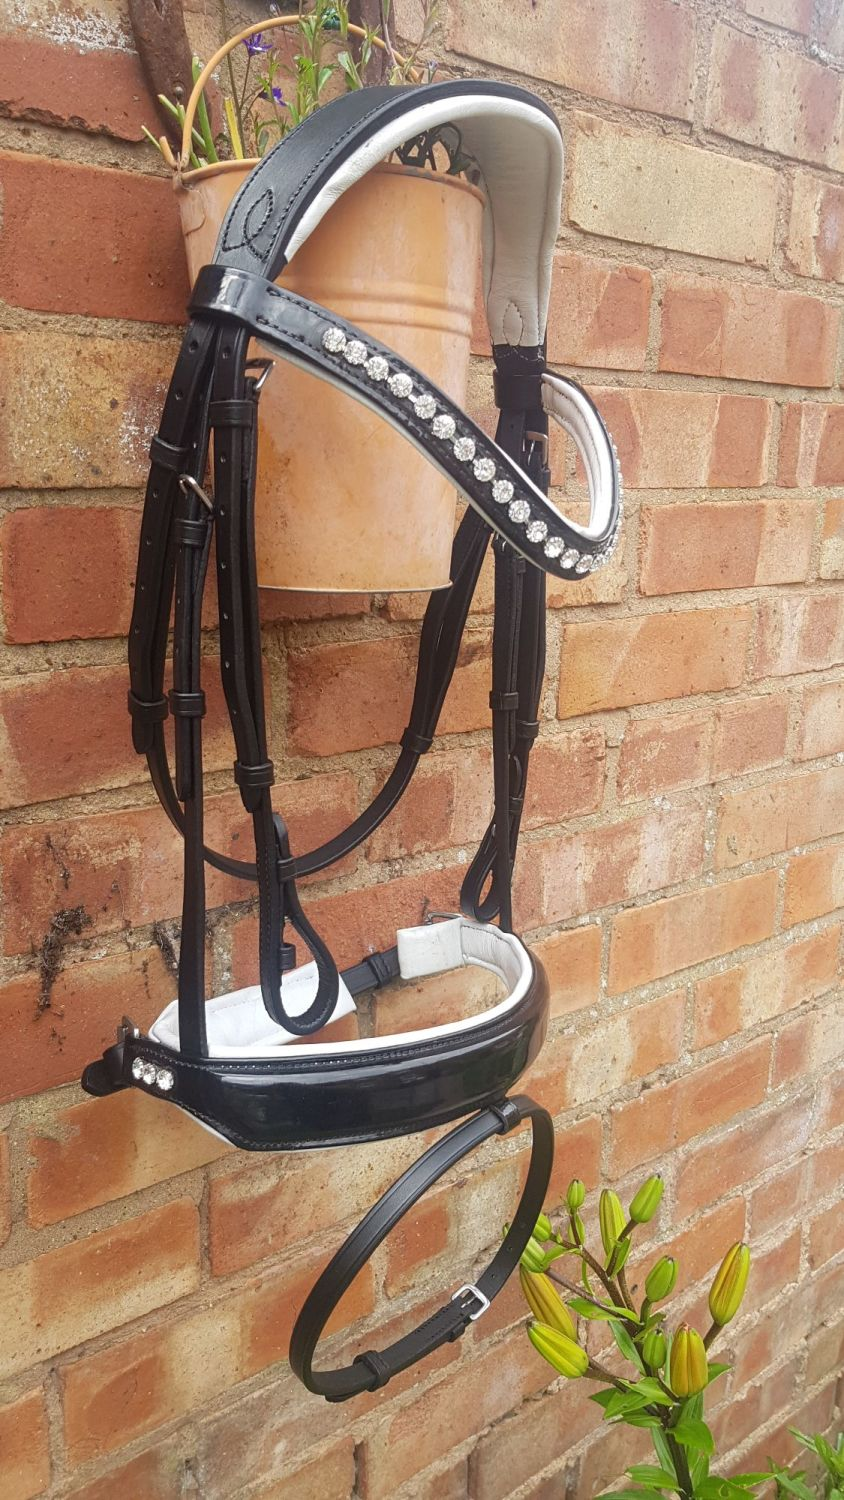 Equitique Elegance Bridle - White padded